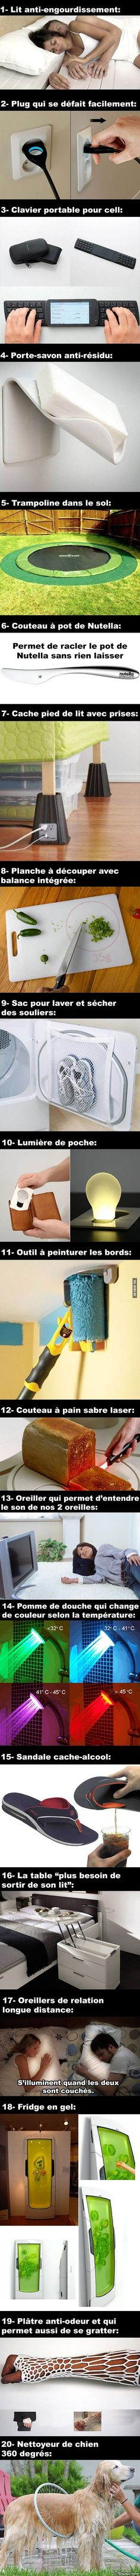 20 Inventions dont on a trop besoin Québec Meme Cool Inventions, Cool Gadgets, Good To Know, Geek Stuff, Cool Stuff, Funny, Amazing, Woodworking Projects, Helpful Hints